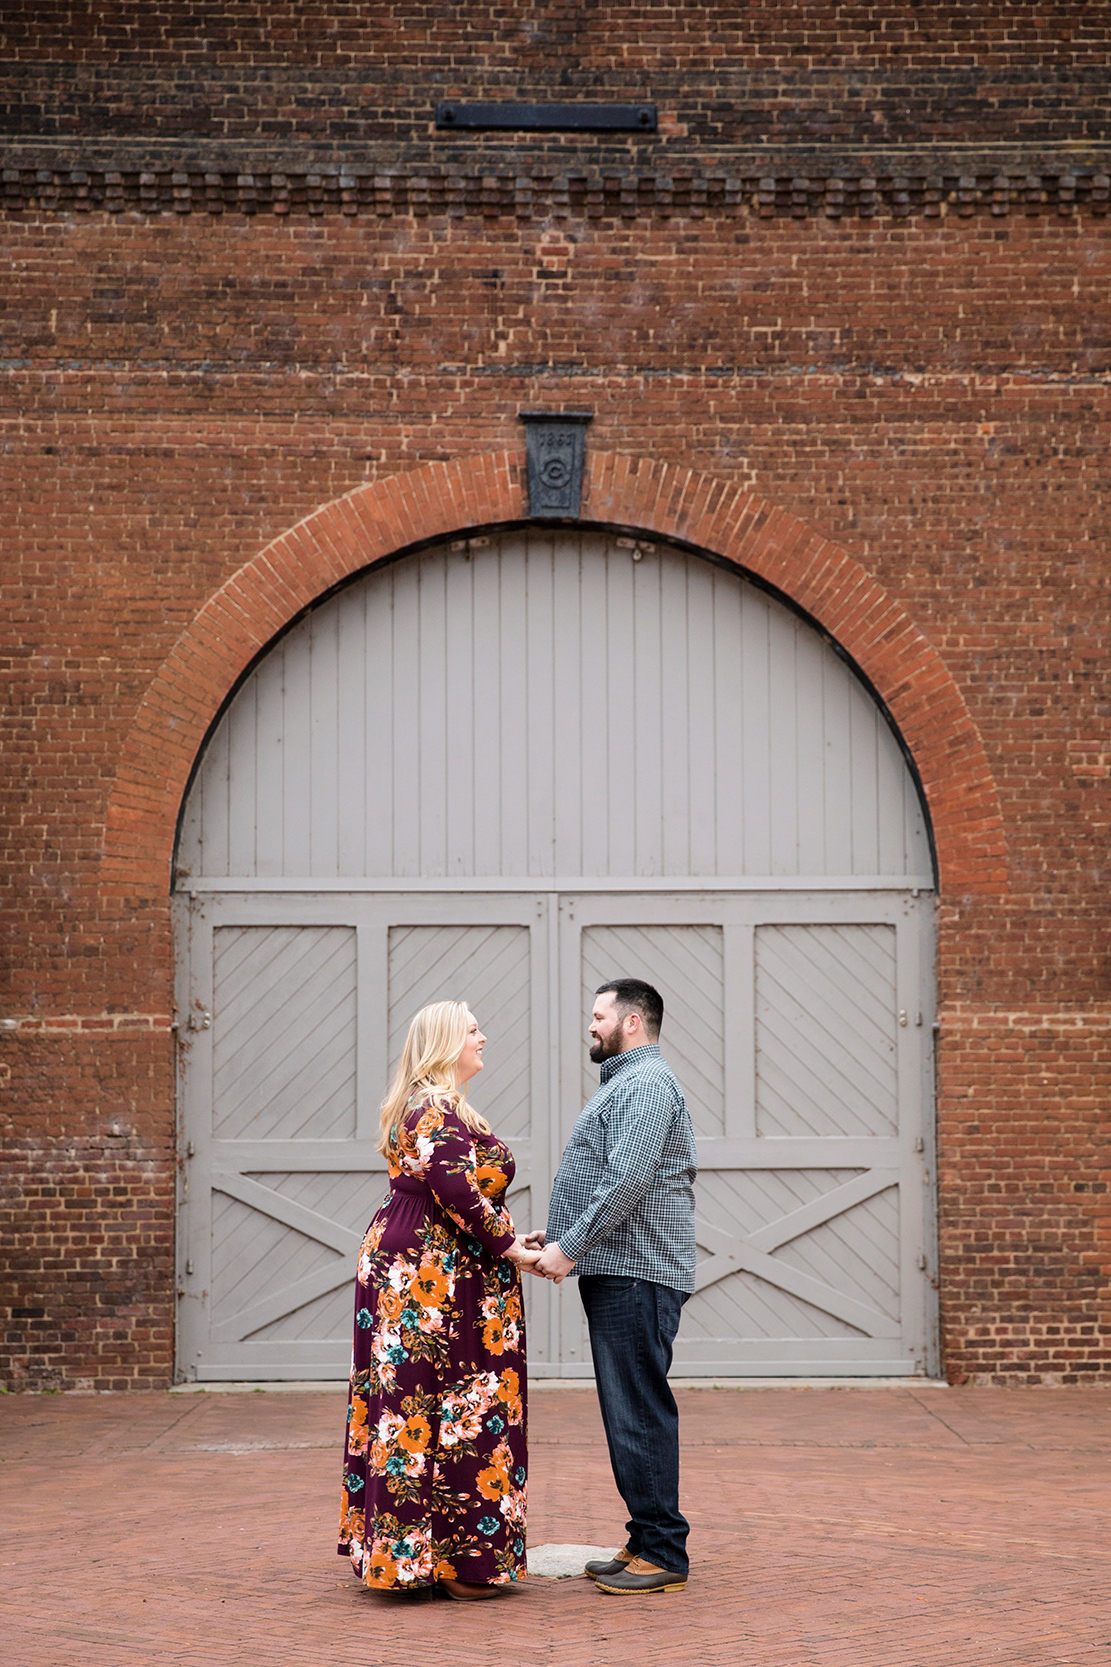 Justin  Marys Engagement Shoot at Tredegar Iron Works - Image Property of www.j-dphoto.com